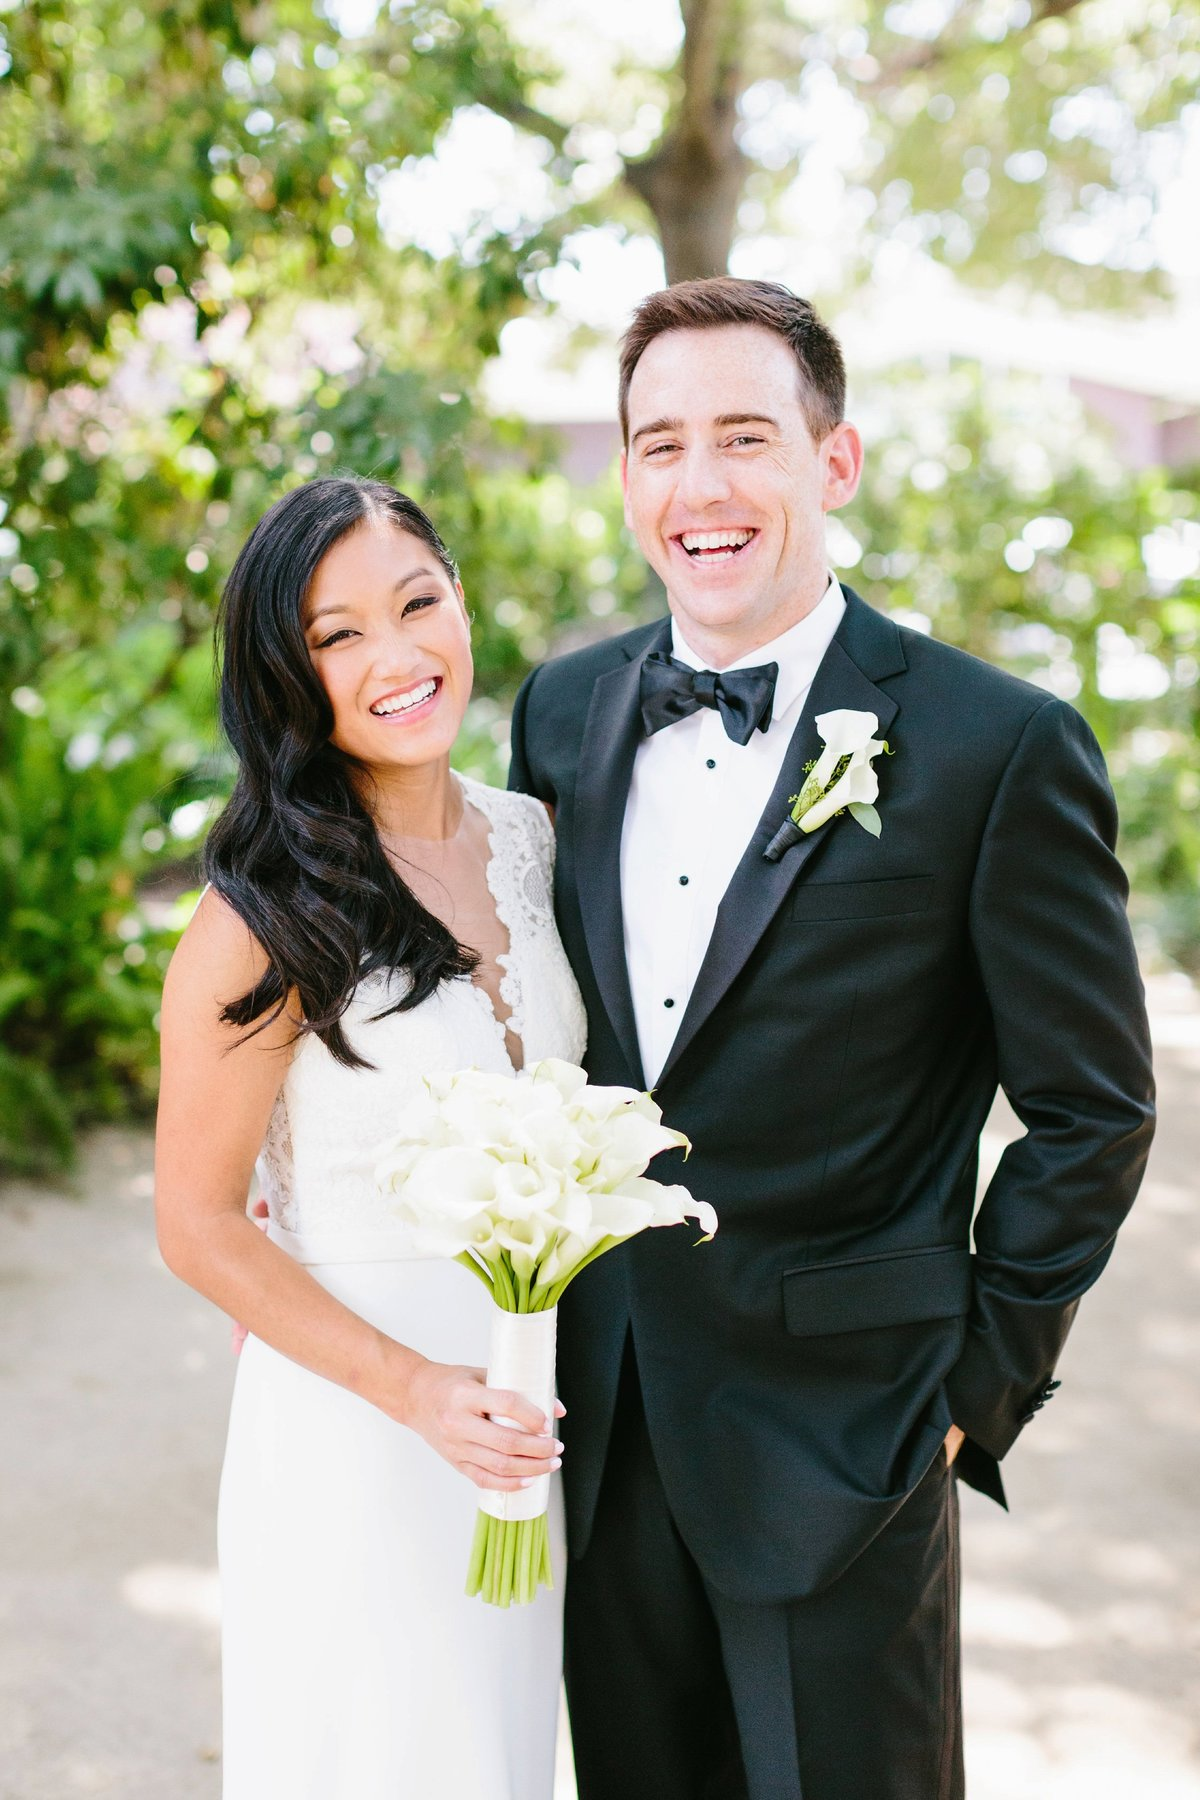 Best California Wedding Photographer-Jodee Debes Photography-207